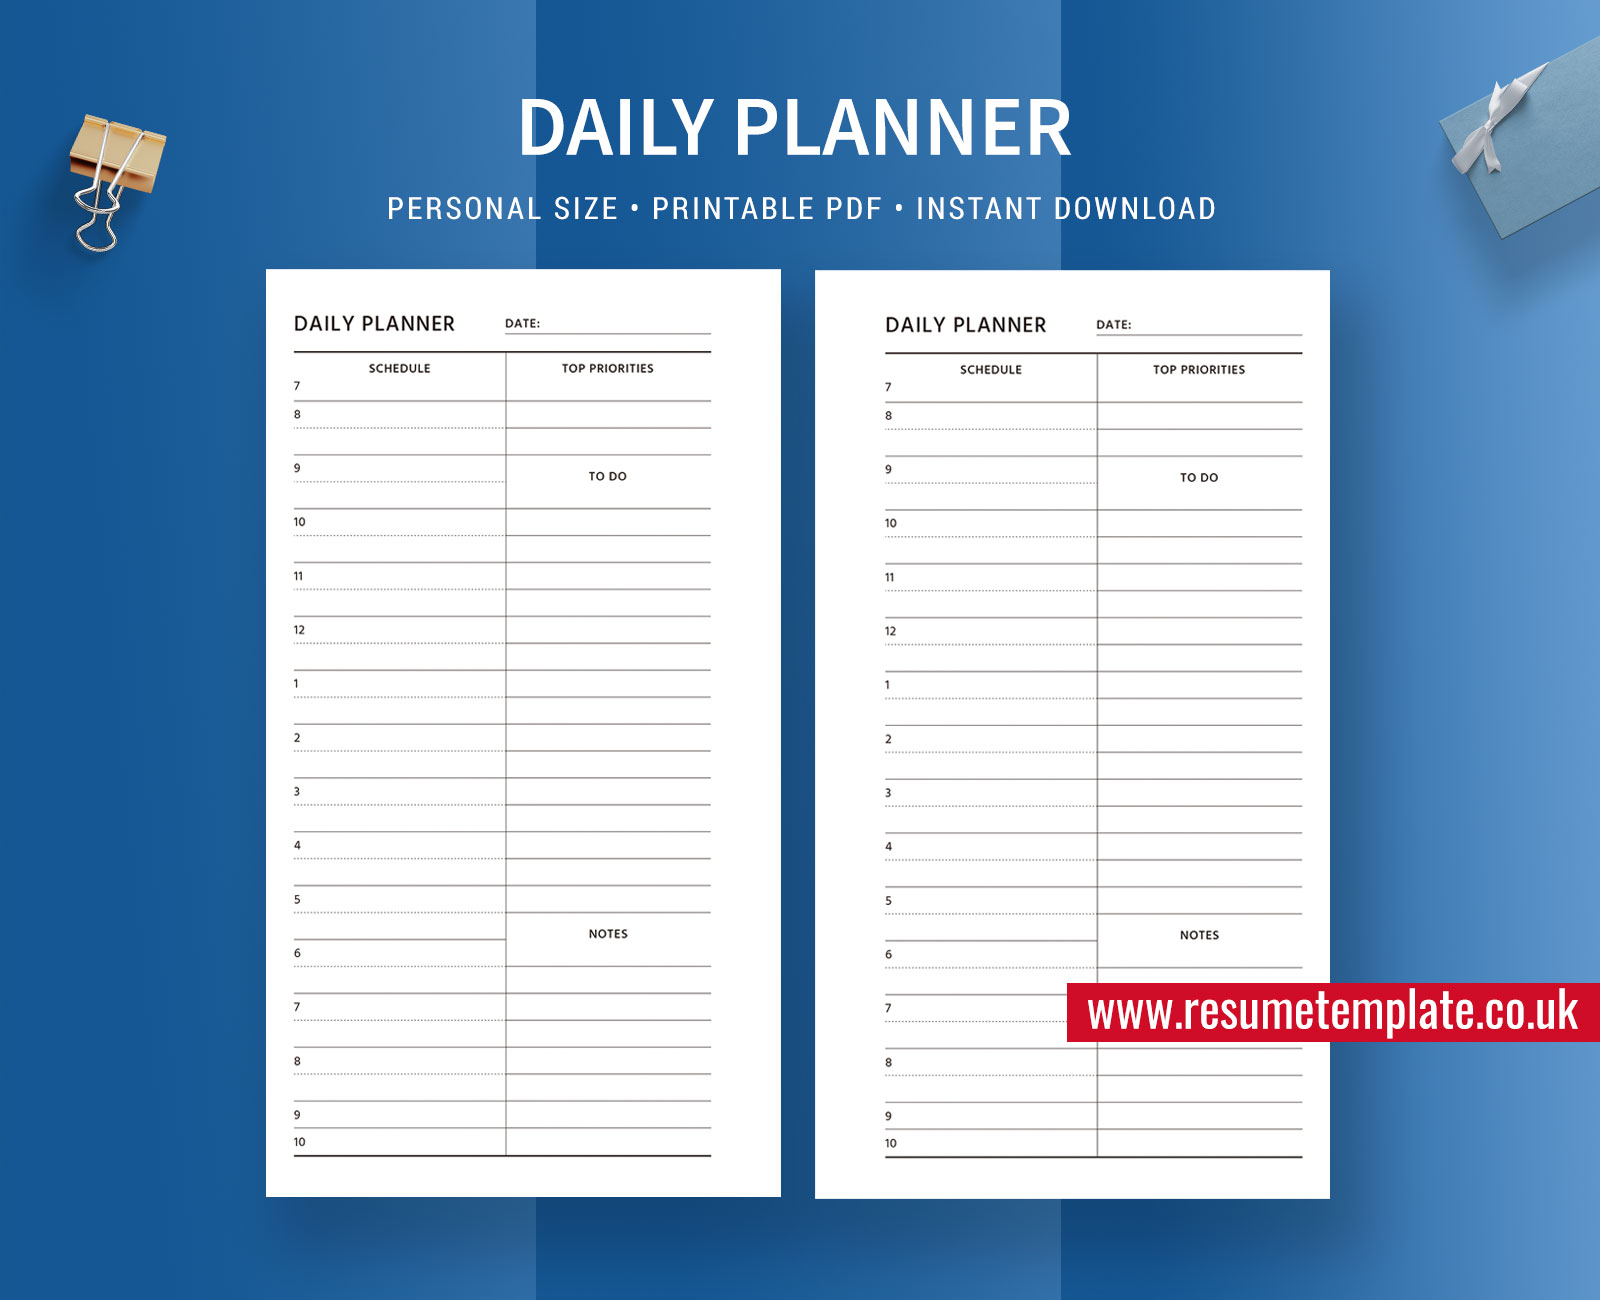 Daily Planner Day Organizer Daily Task Planner Personal Size Planner Printable Planner Inserts Filofax Personal Instant Download Resumetemplate Co Uk